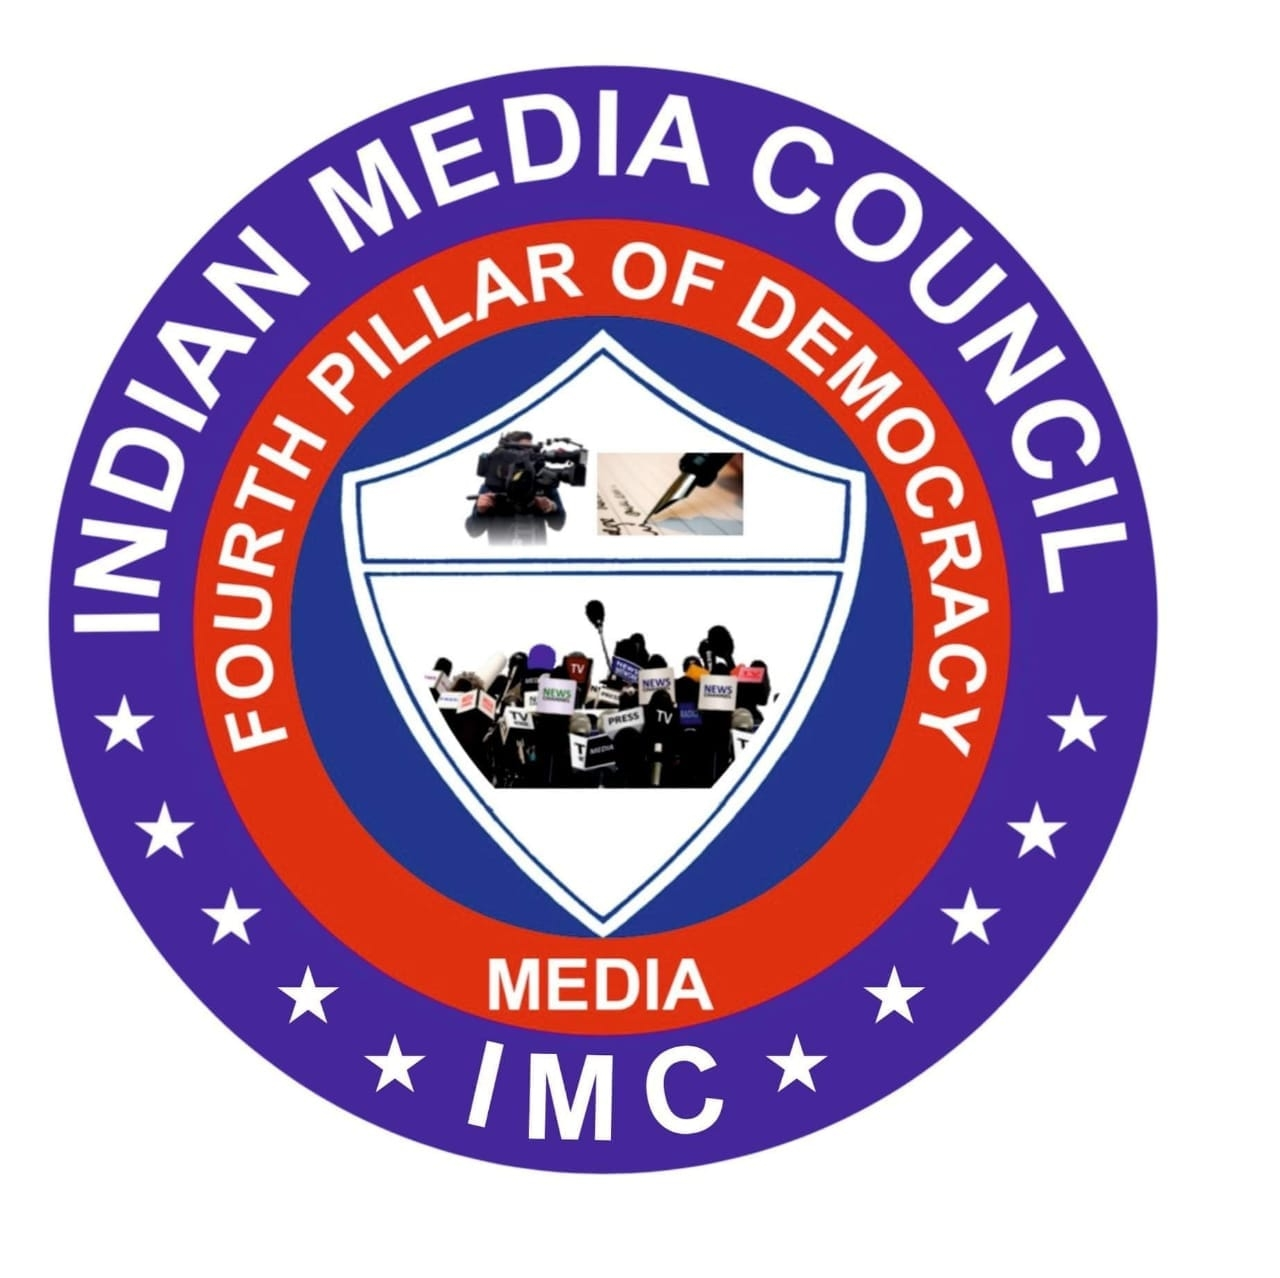 Indian Media Council